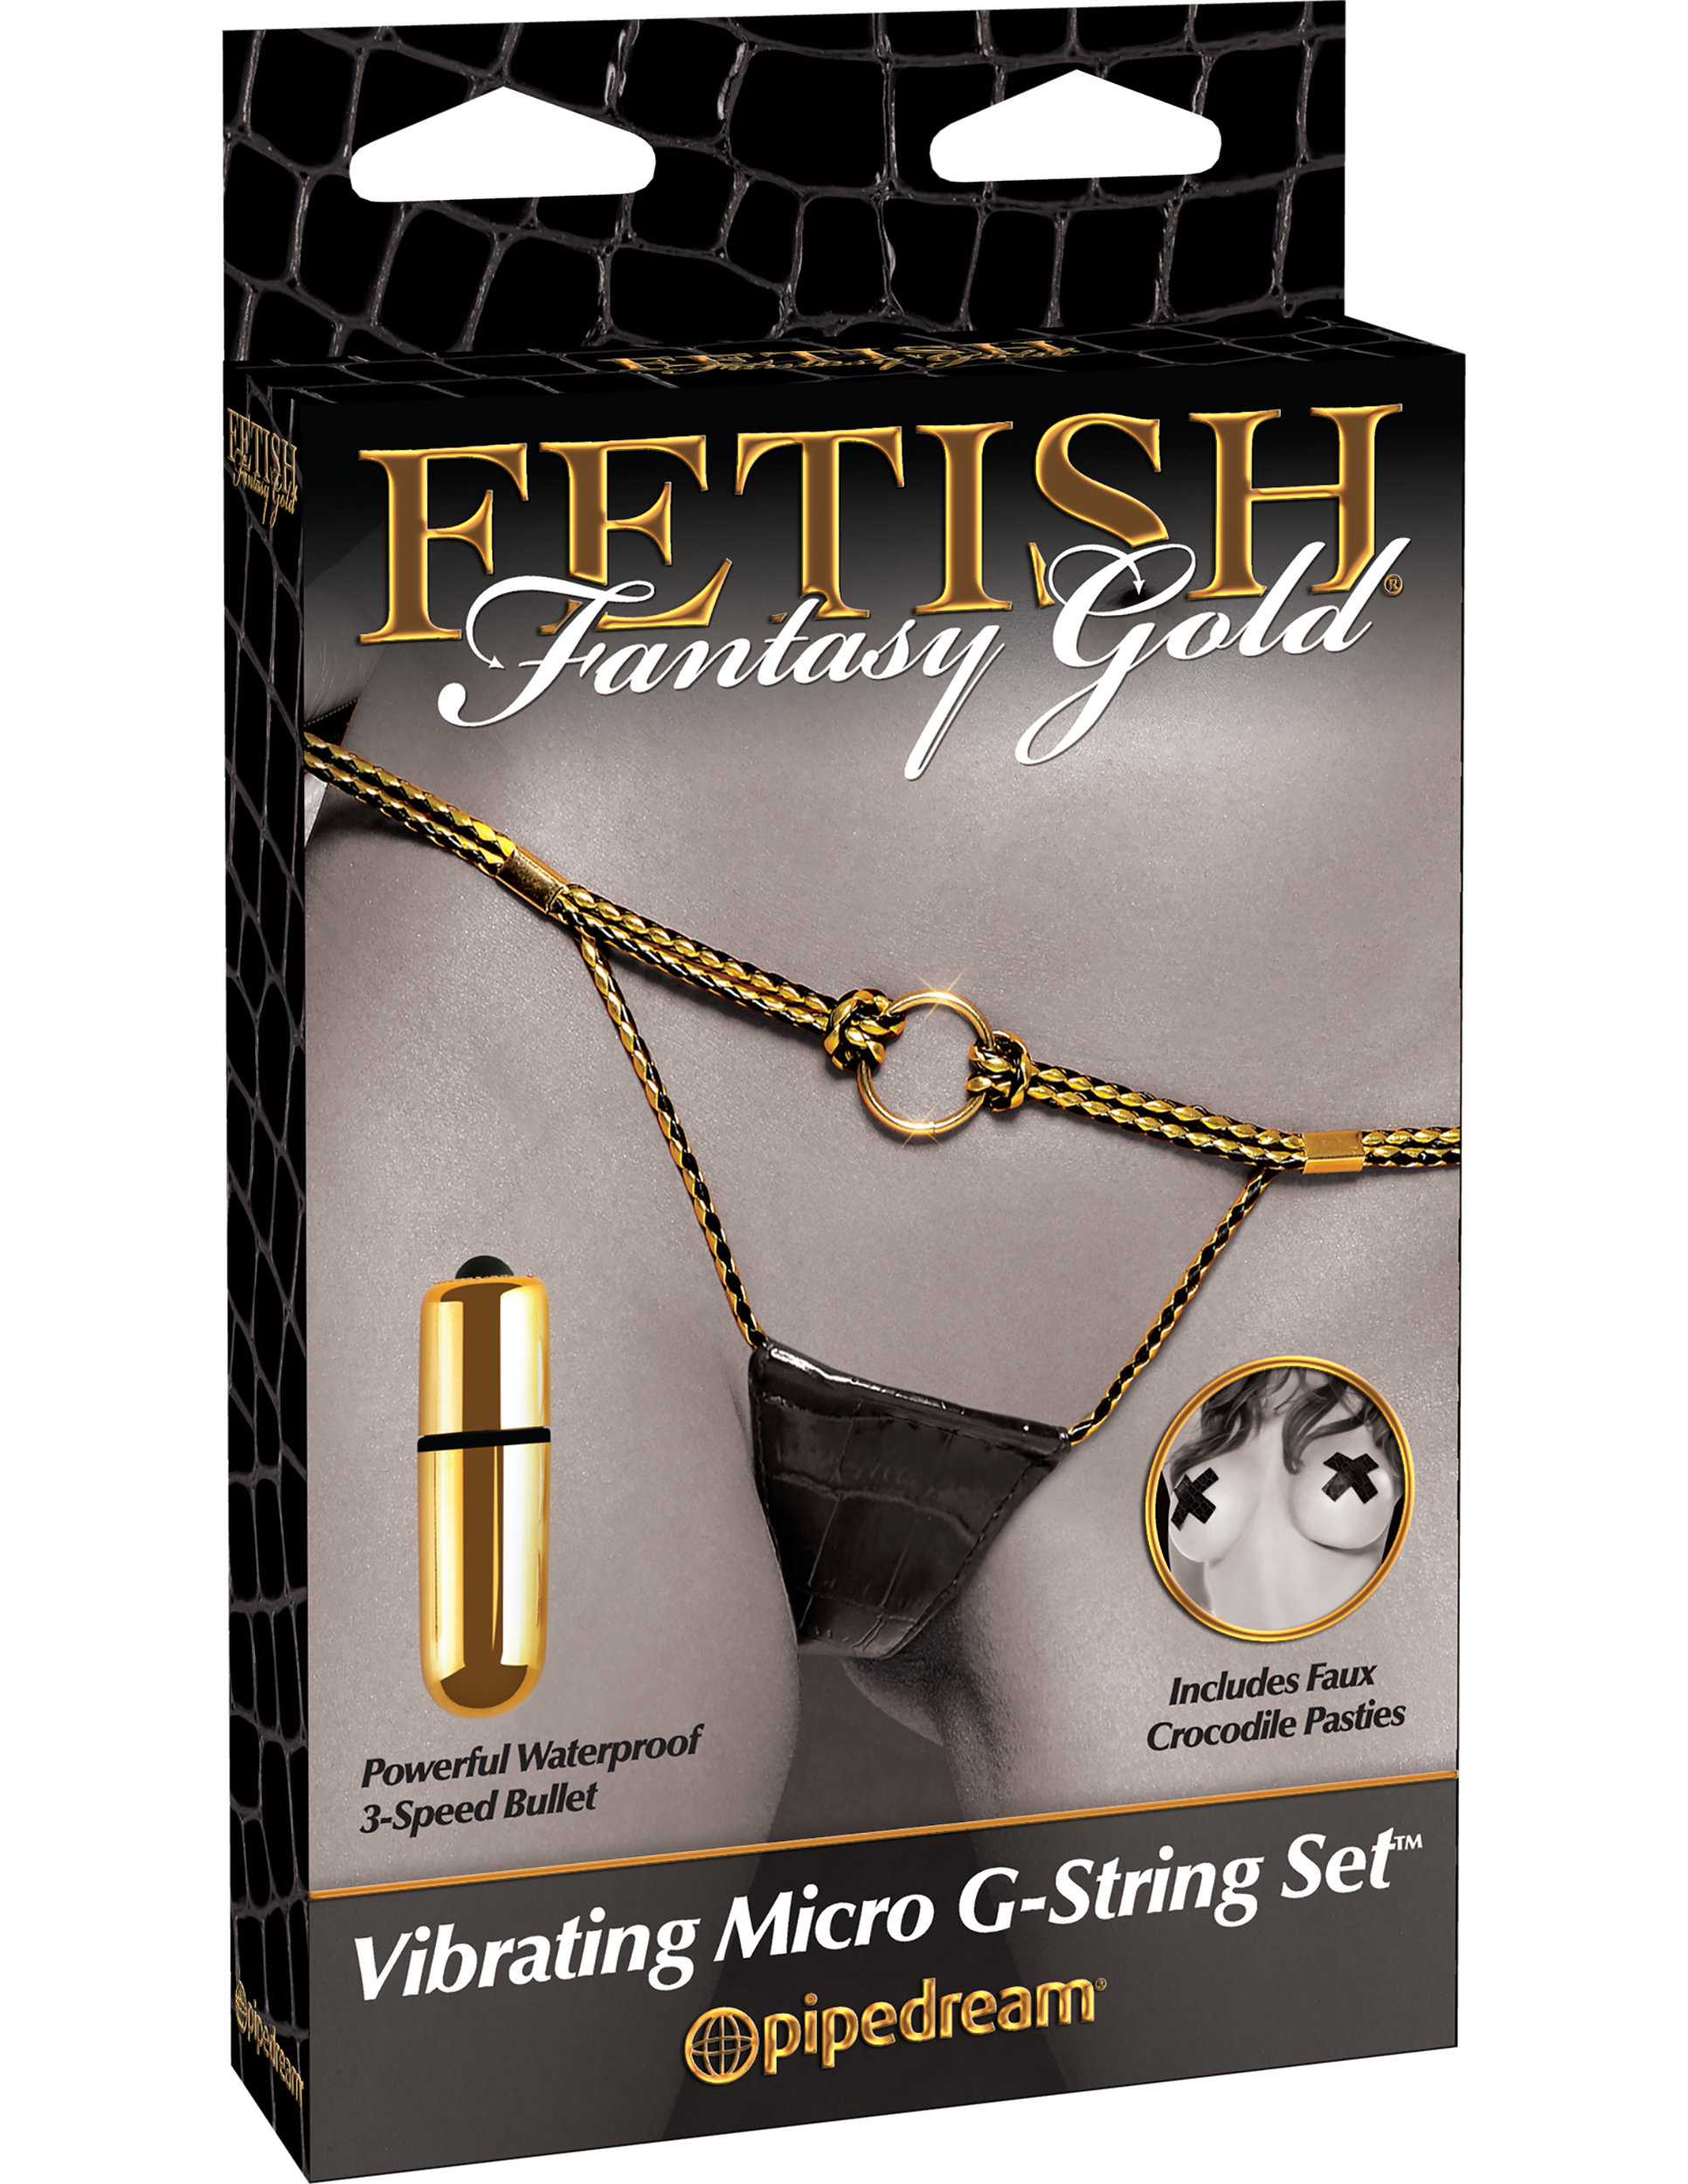 Fetish Fantasy Micro G String Set Vibrating